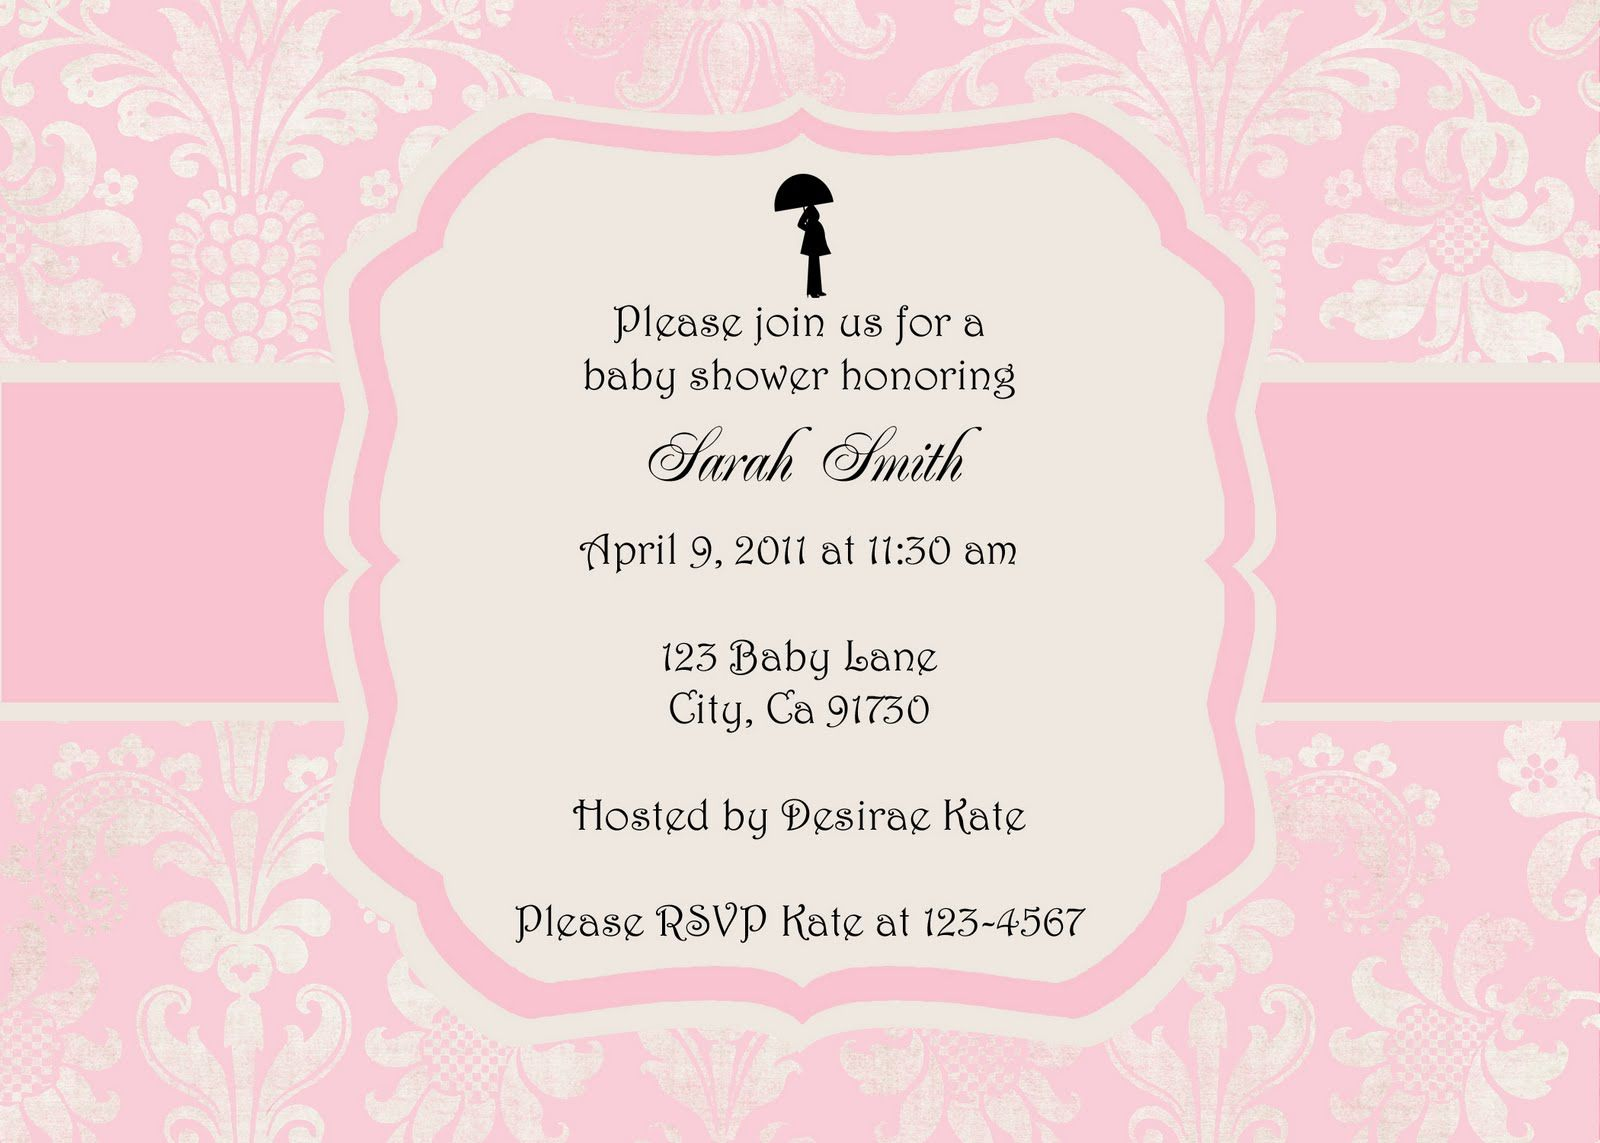 handcrafted baby shower invitations | designed beautifully | recipes ...